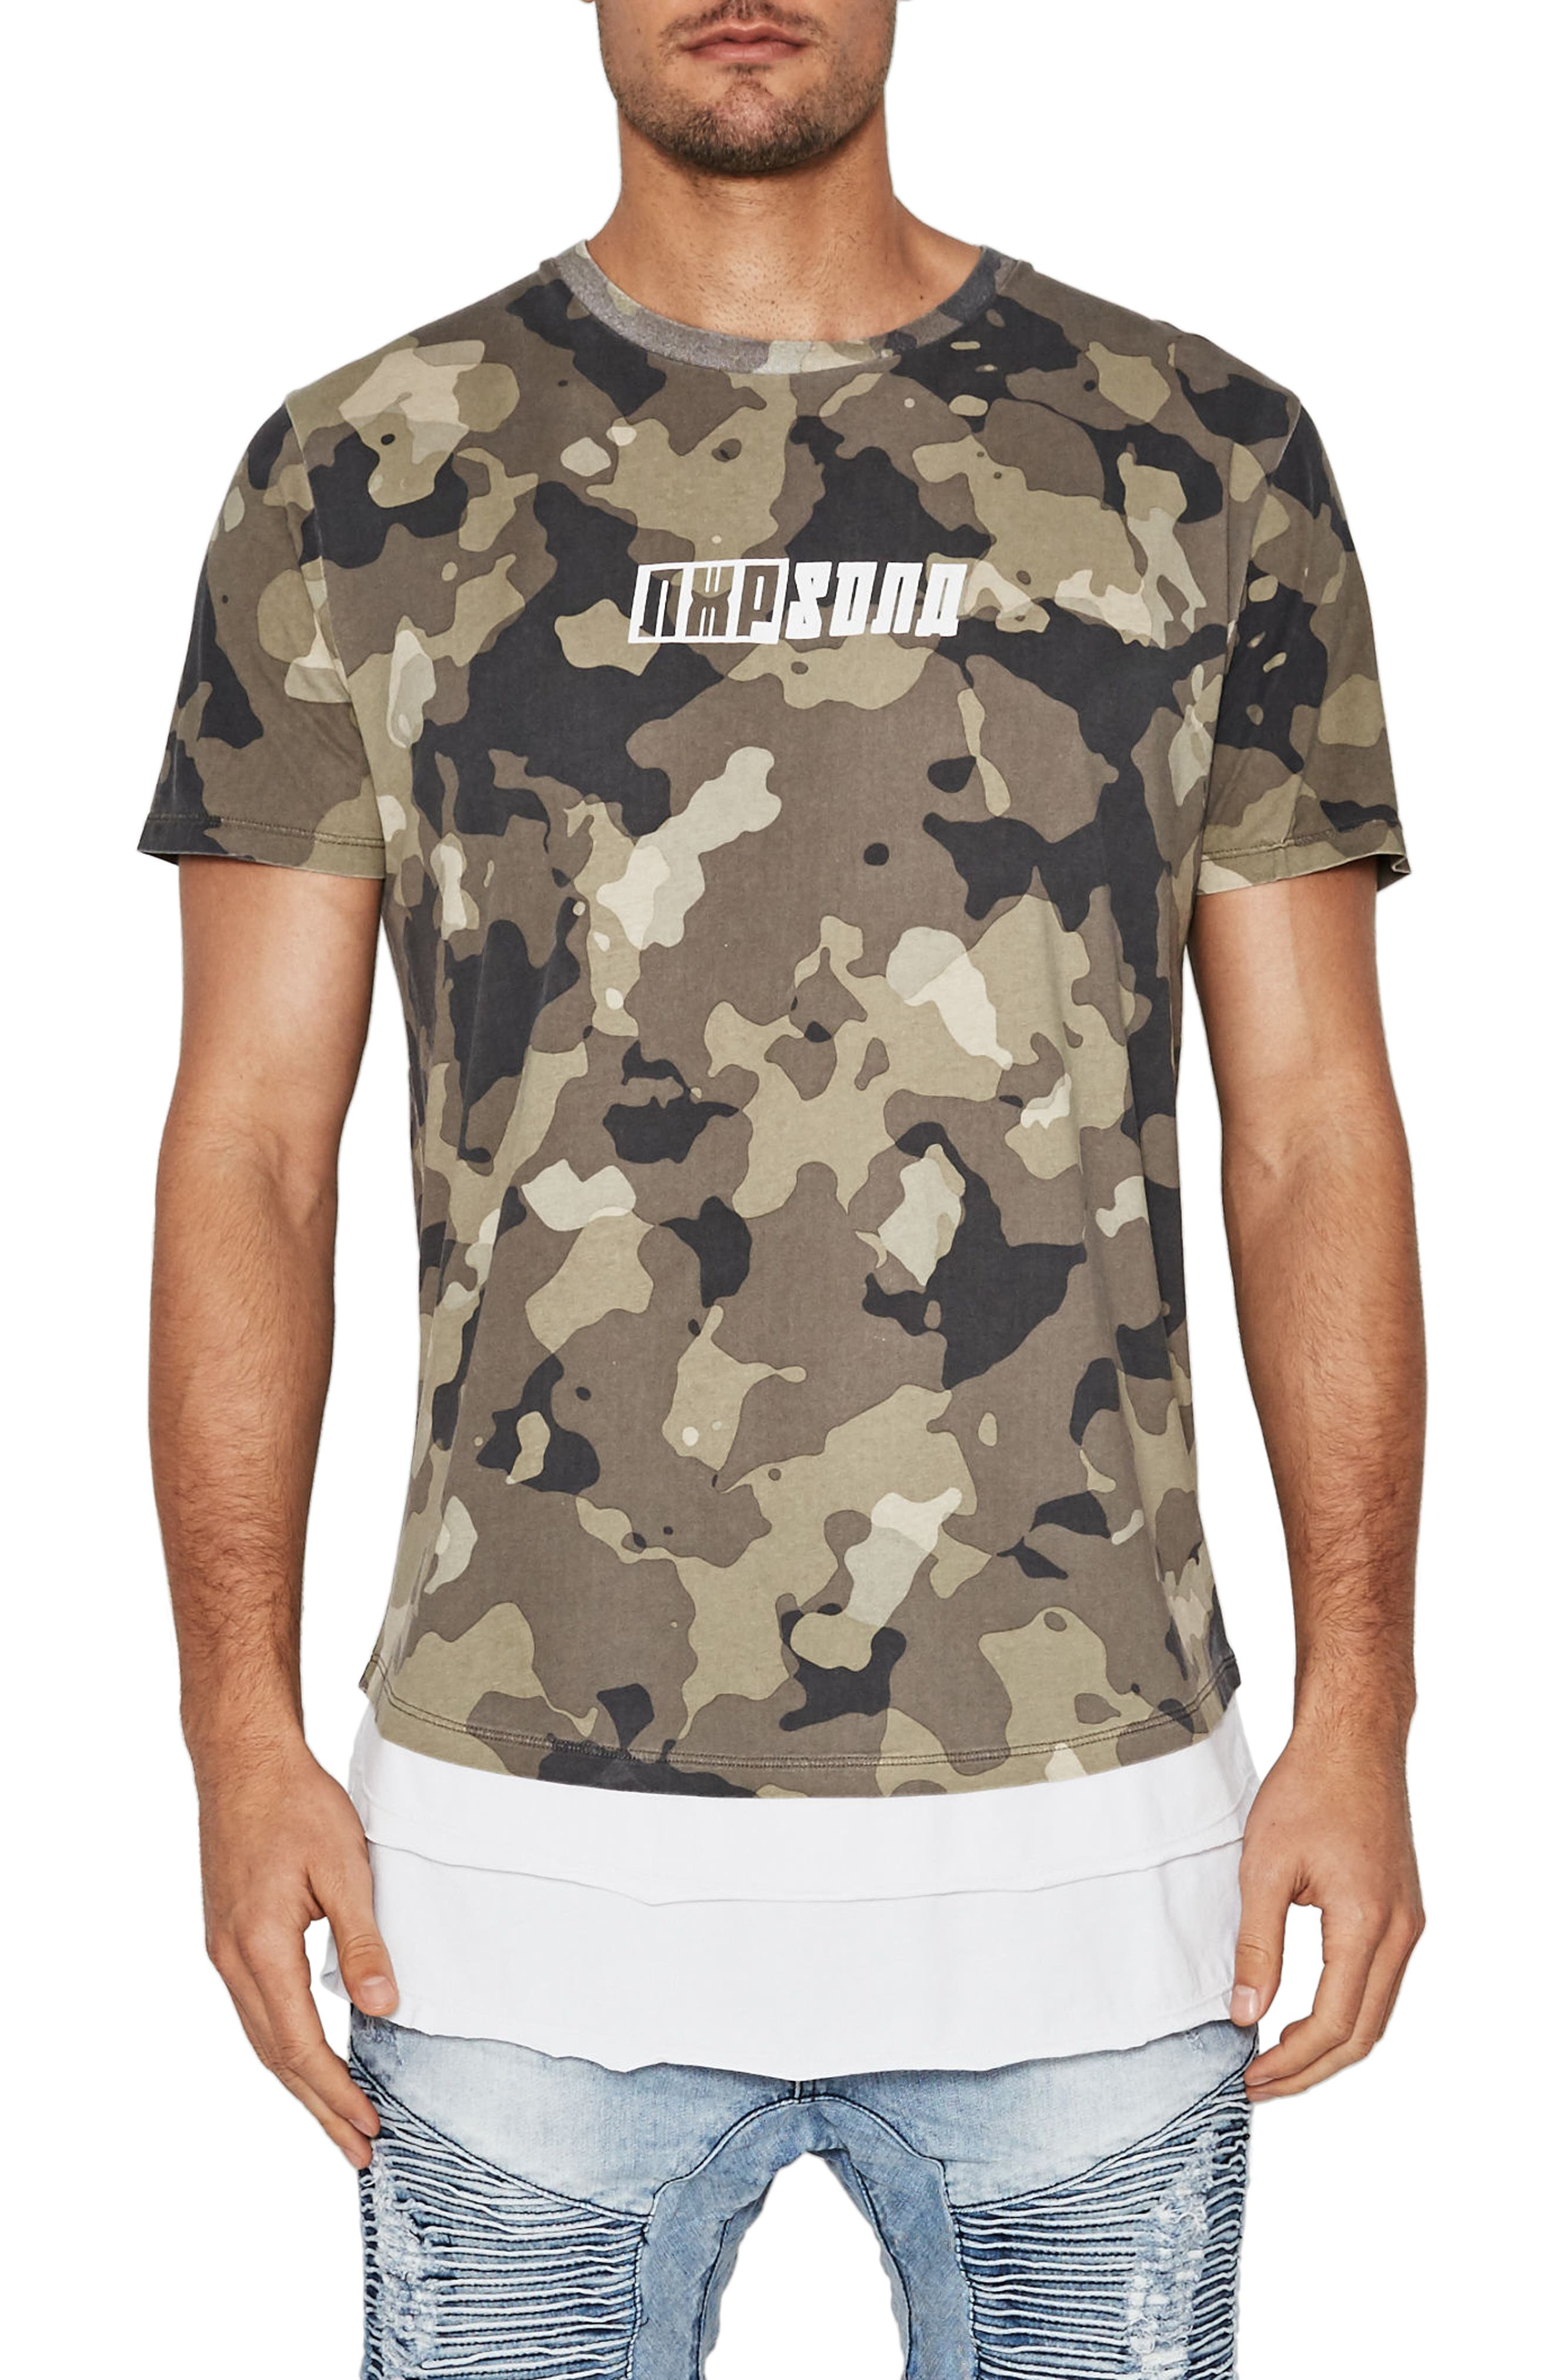 Specialized Camo T-Shirt,                             Main thumbnail 1, color,                             300